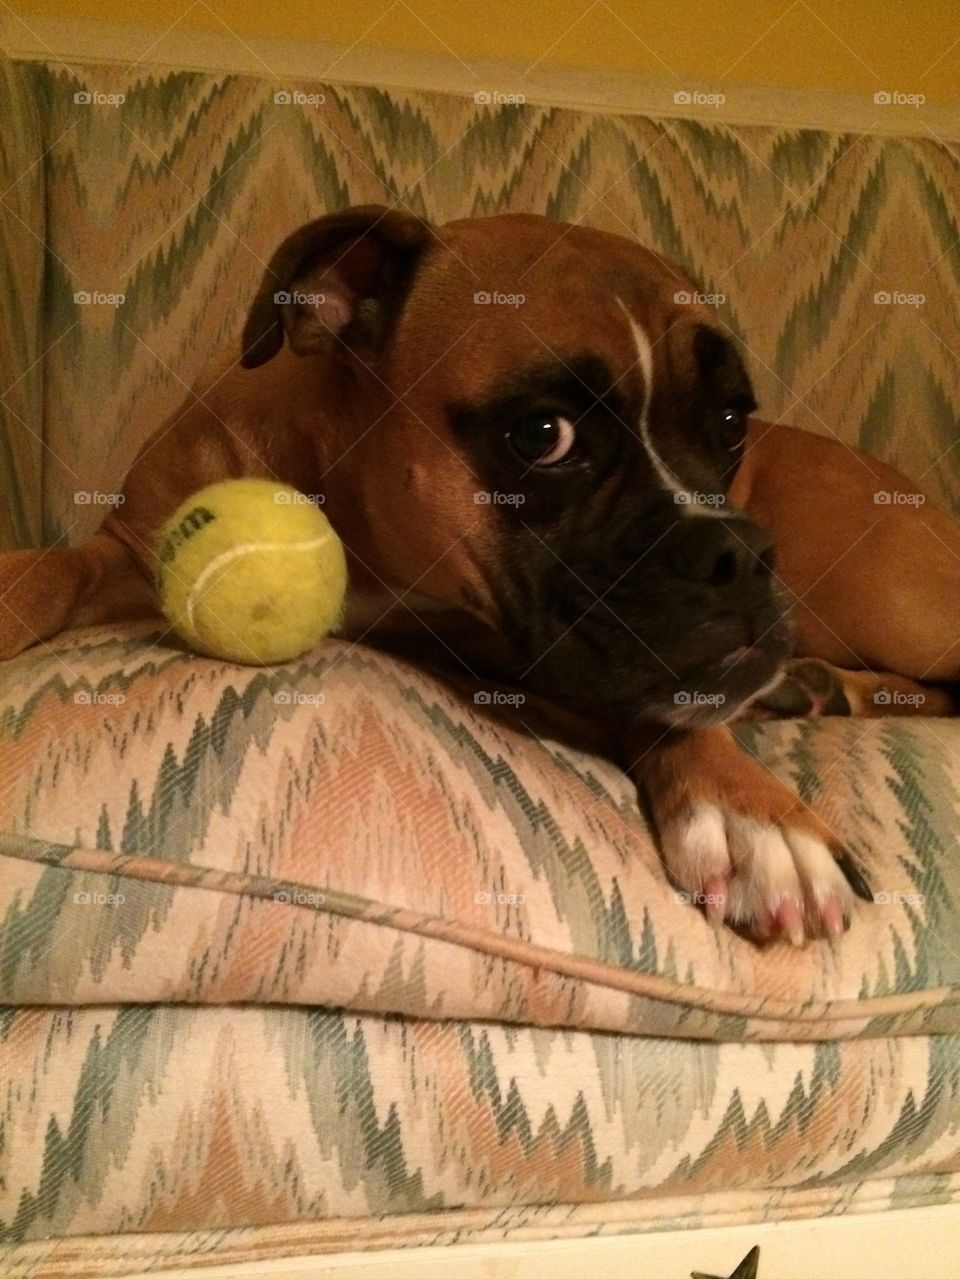 what ball?